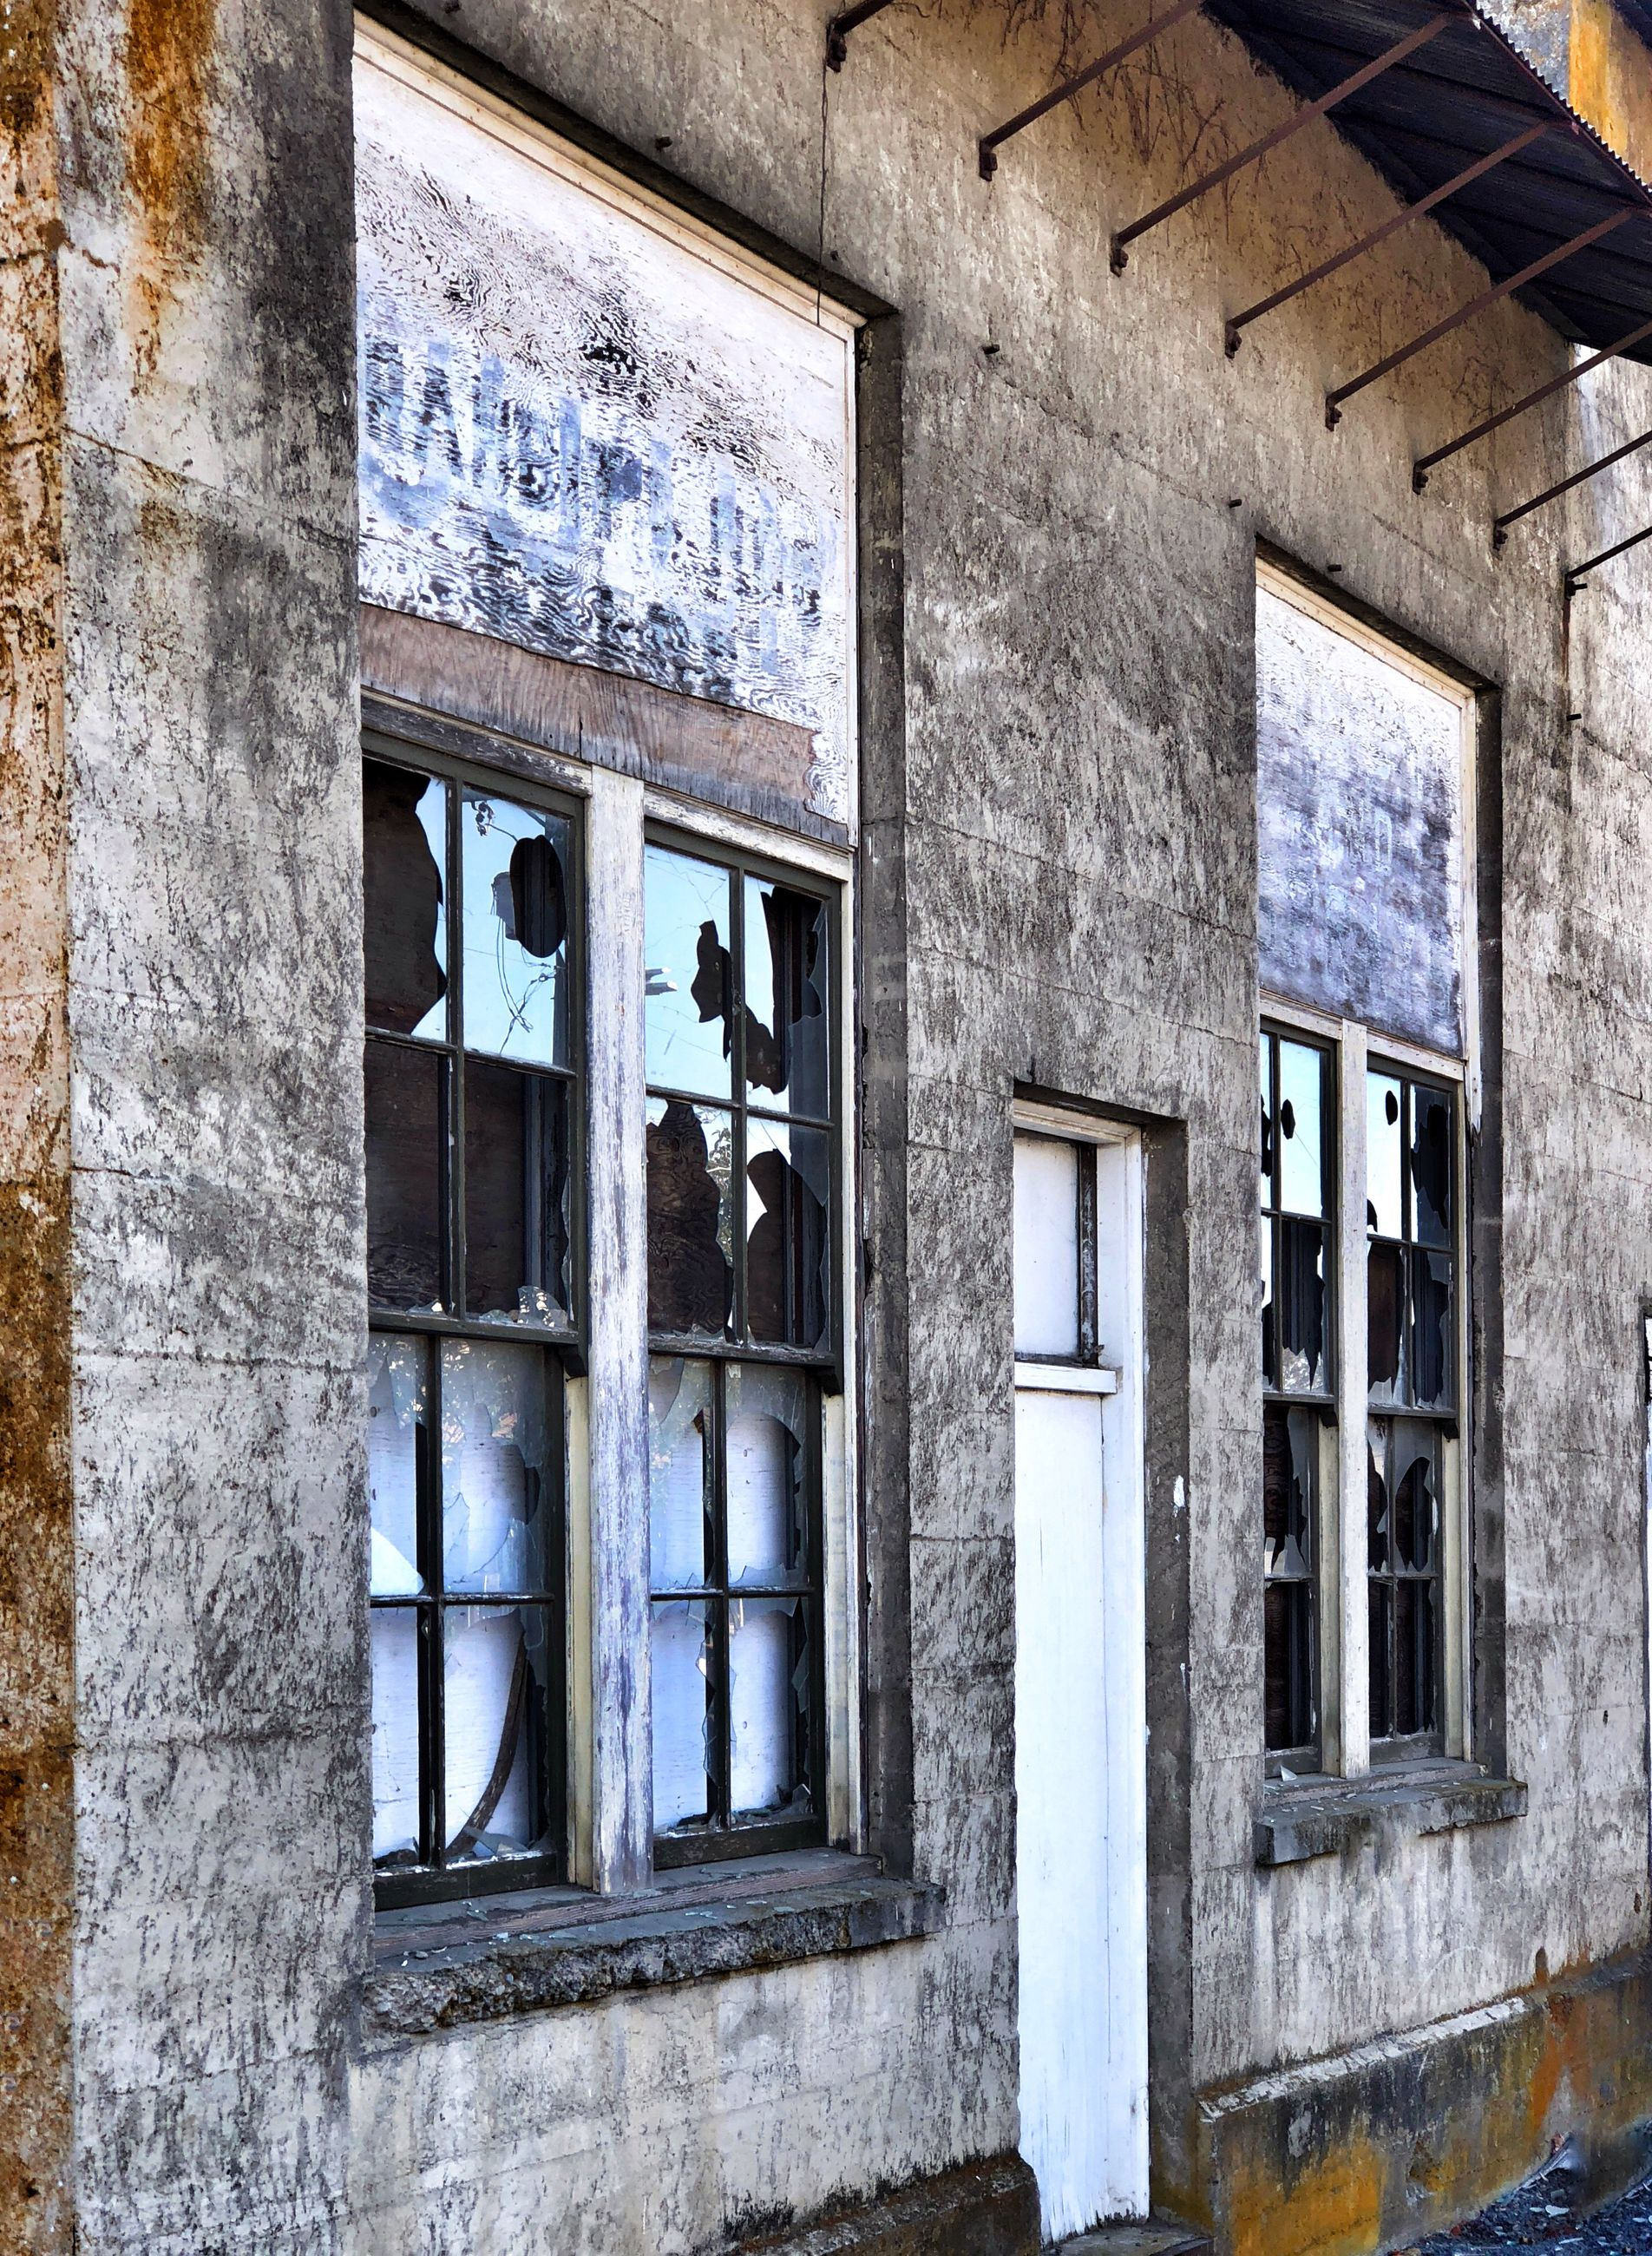 window, architecture, built structure, building, building exterior, no people, day, old, glass - material, abandoned, reflection, wall, outdoors, low angle view, house, residential district, damaged, weathered, wall - building feature, bad condition, ruined